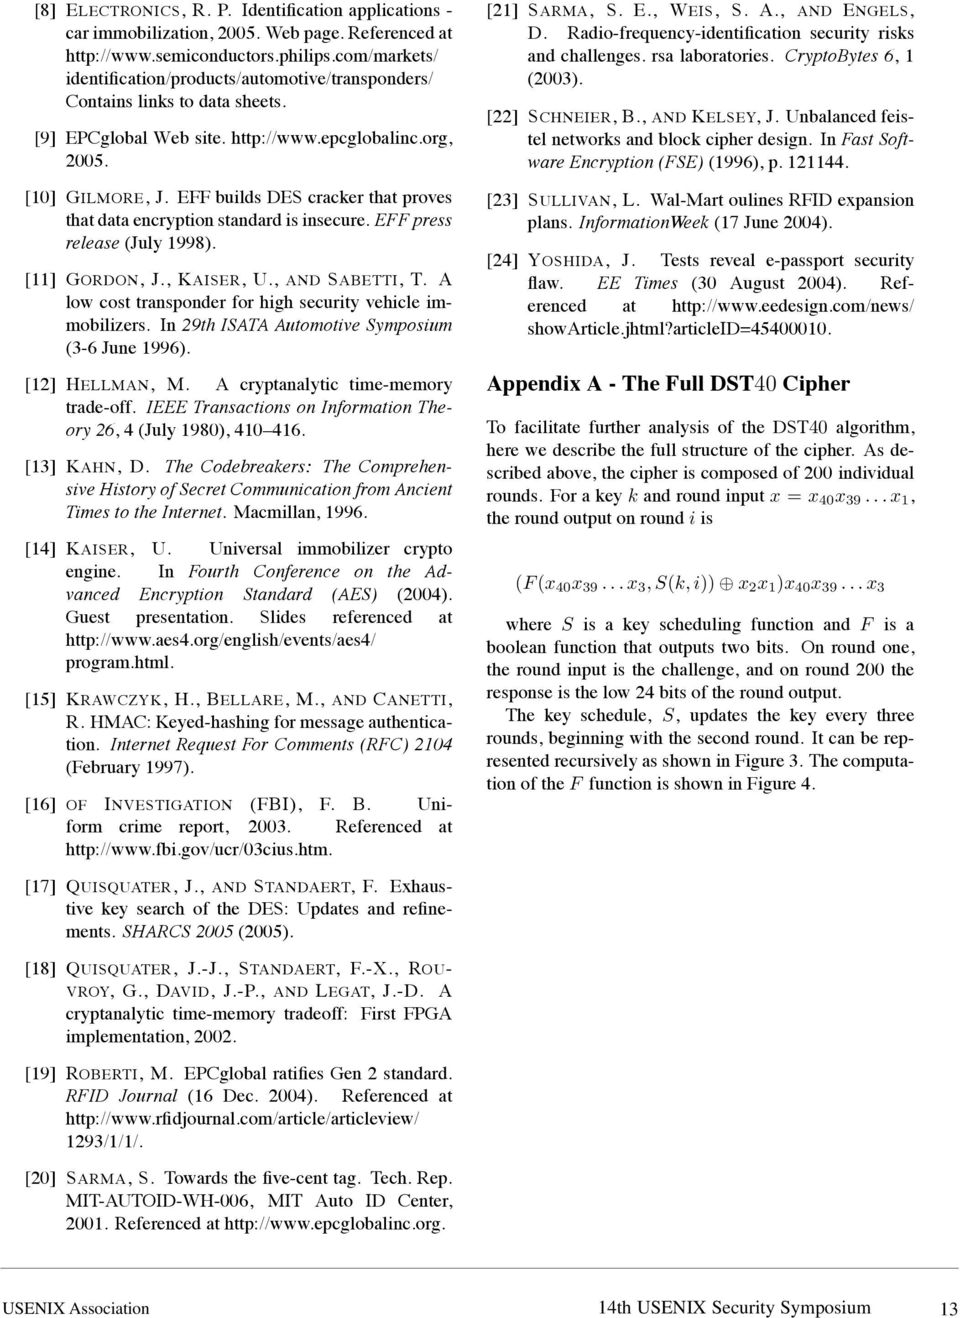 EFF builds DES cracker that proves that data encryption standard is insecure. EFF press release (July 1998). [11] GORDON, J.,KAISER, U., AND SABETTI, T.